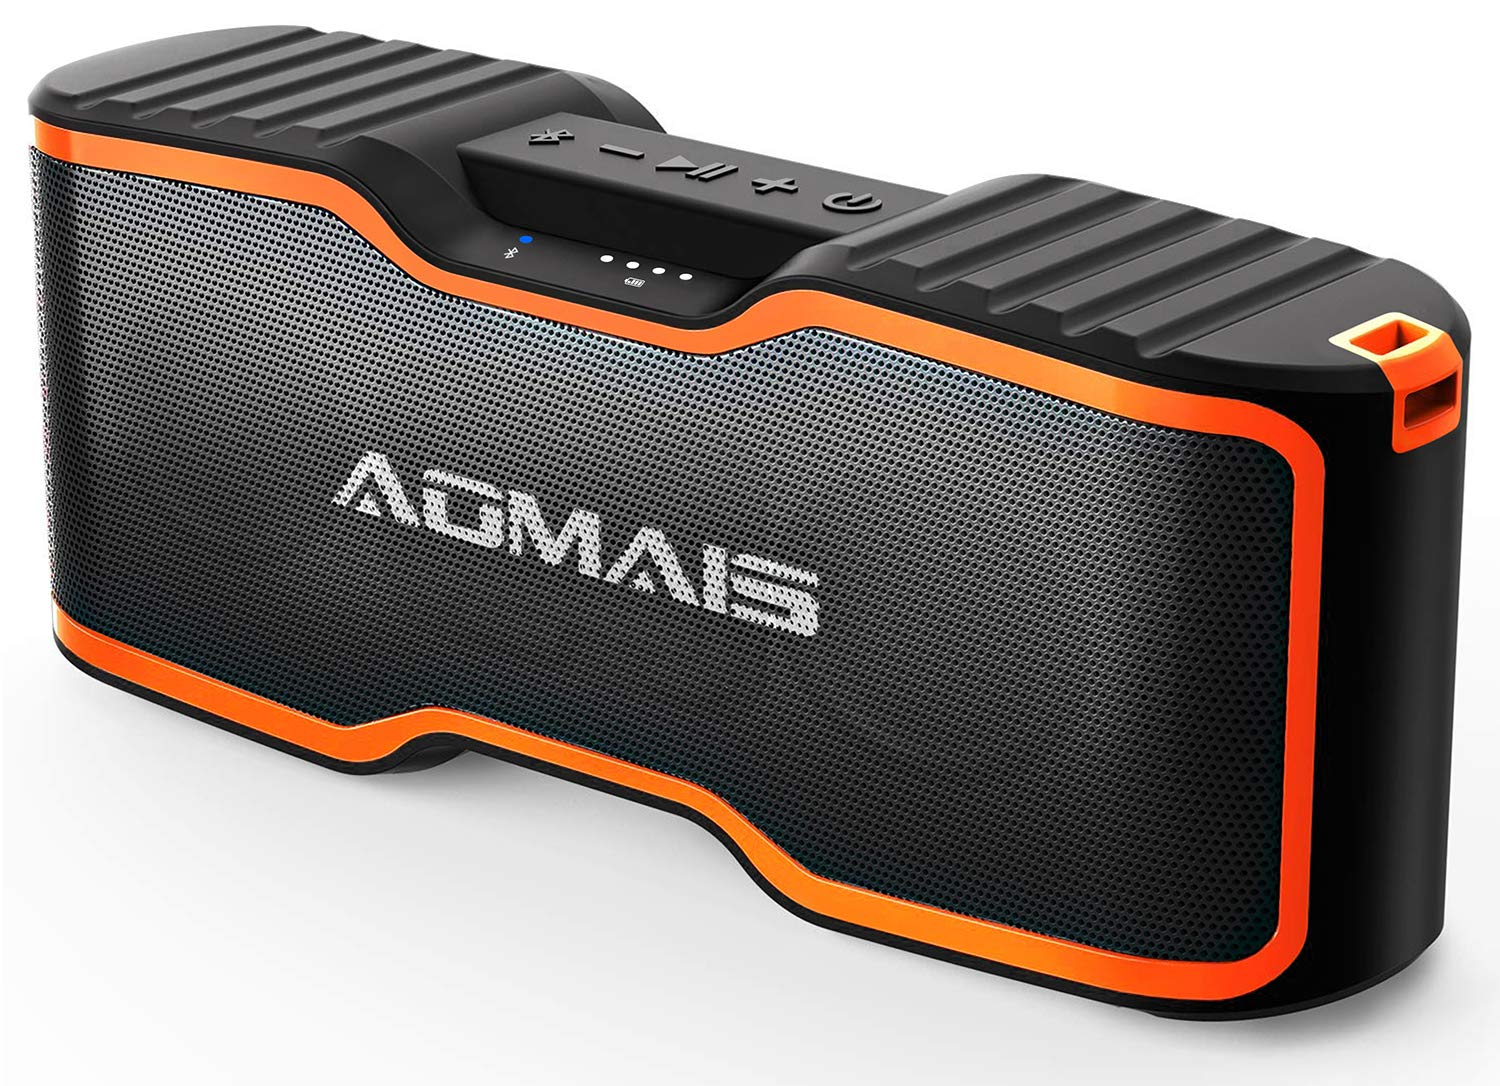 AOMAIS Sport II+ Bluetooth Speakers, Portable Outdoor Wireless Speaker, 30H Playtime, 20W HD Stereo Sound & Richer Bass, IPX7 Waterproof, 100ft Bluetooth for Travel, Party, Beach【2019 Upgrade Version】 by AOMAIS